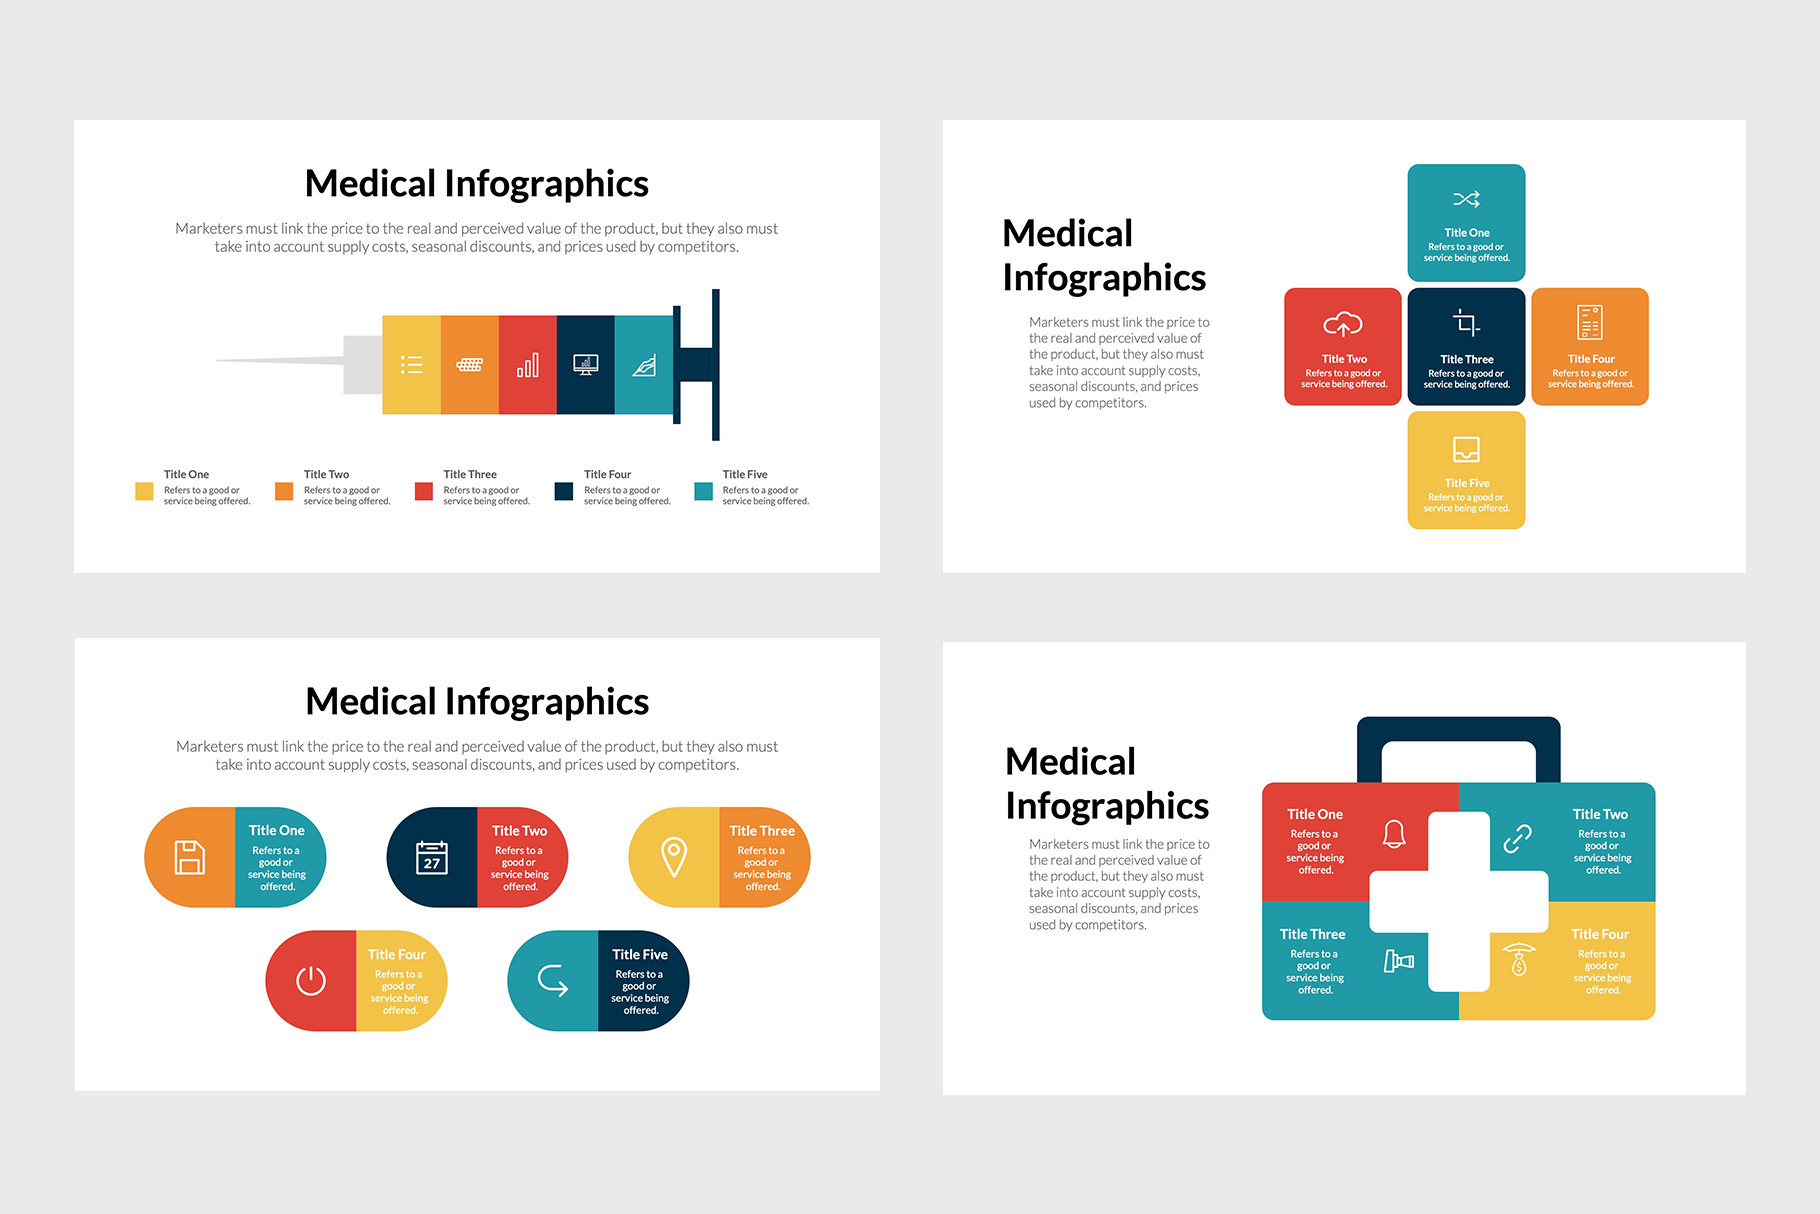 Best Medical Infographics of